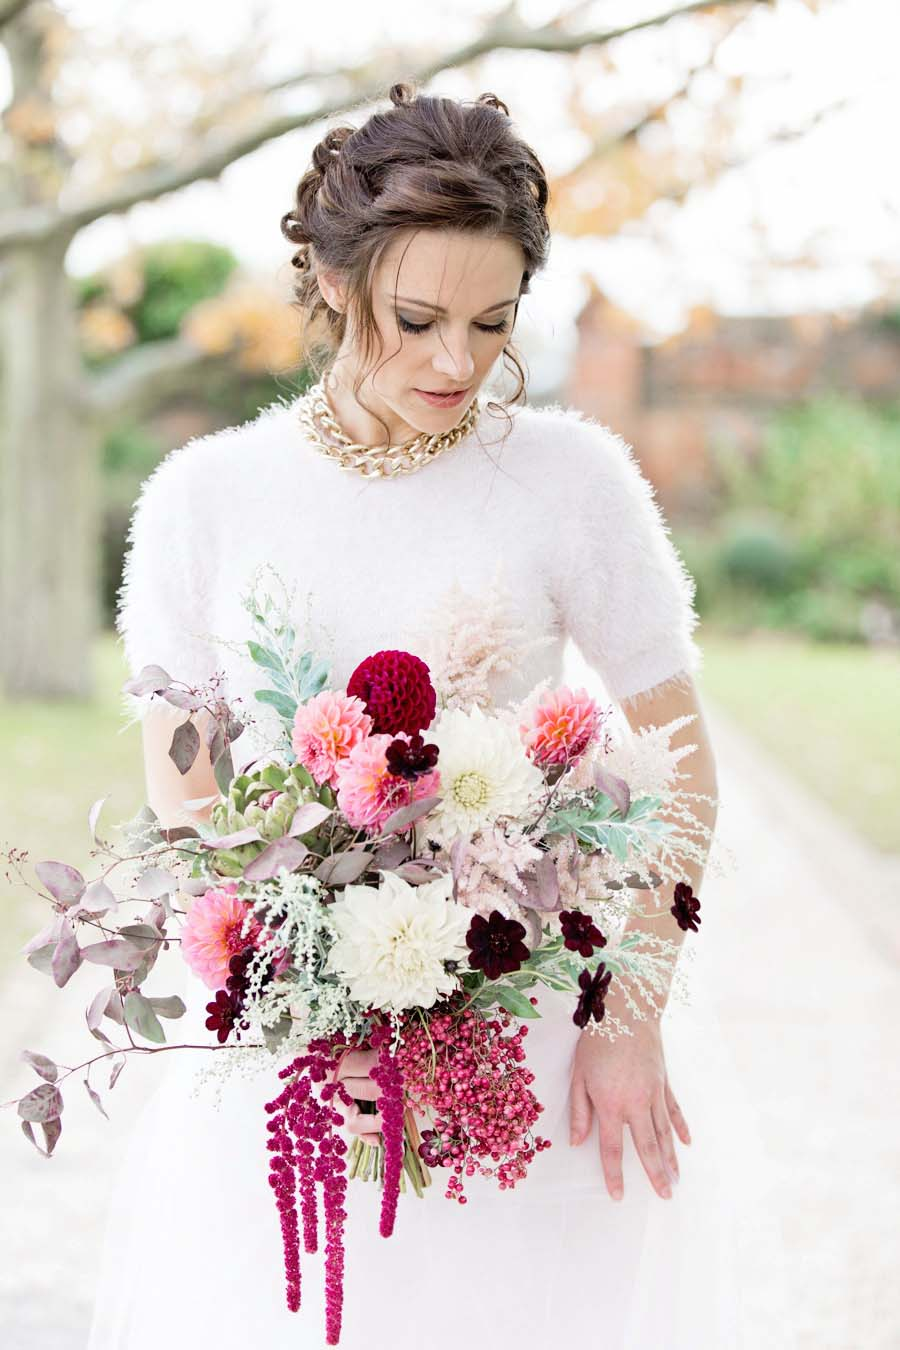 'Hollywood Glam' A Sophisticated, Feminine Bridal Shoot With Bold Burgundy!